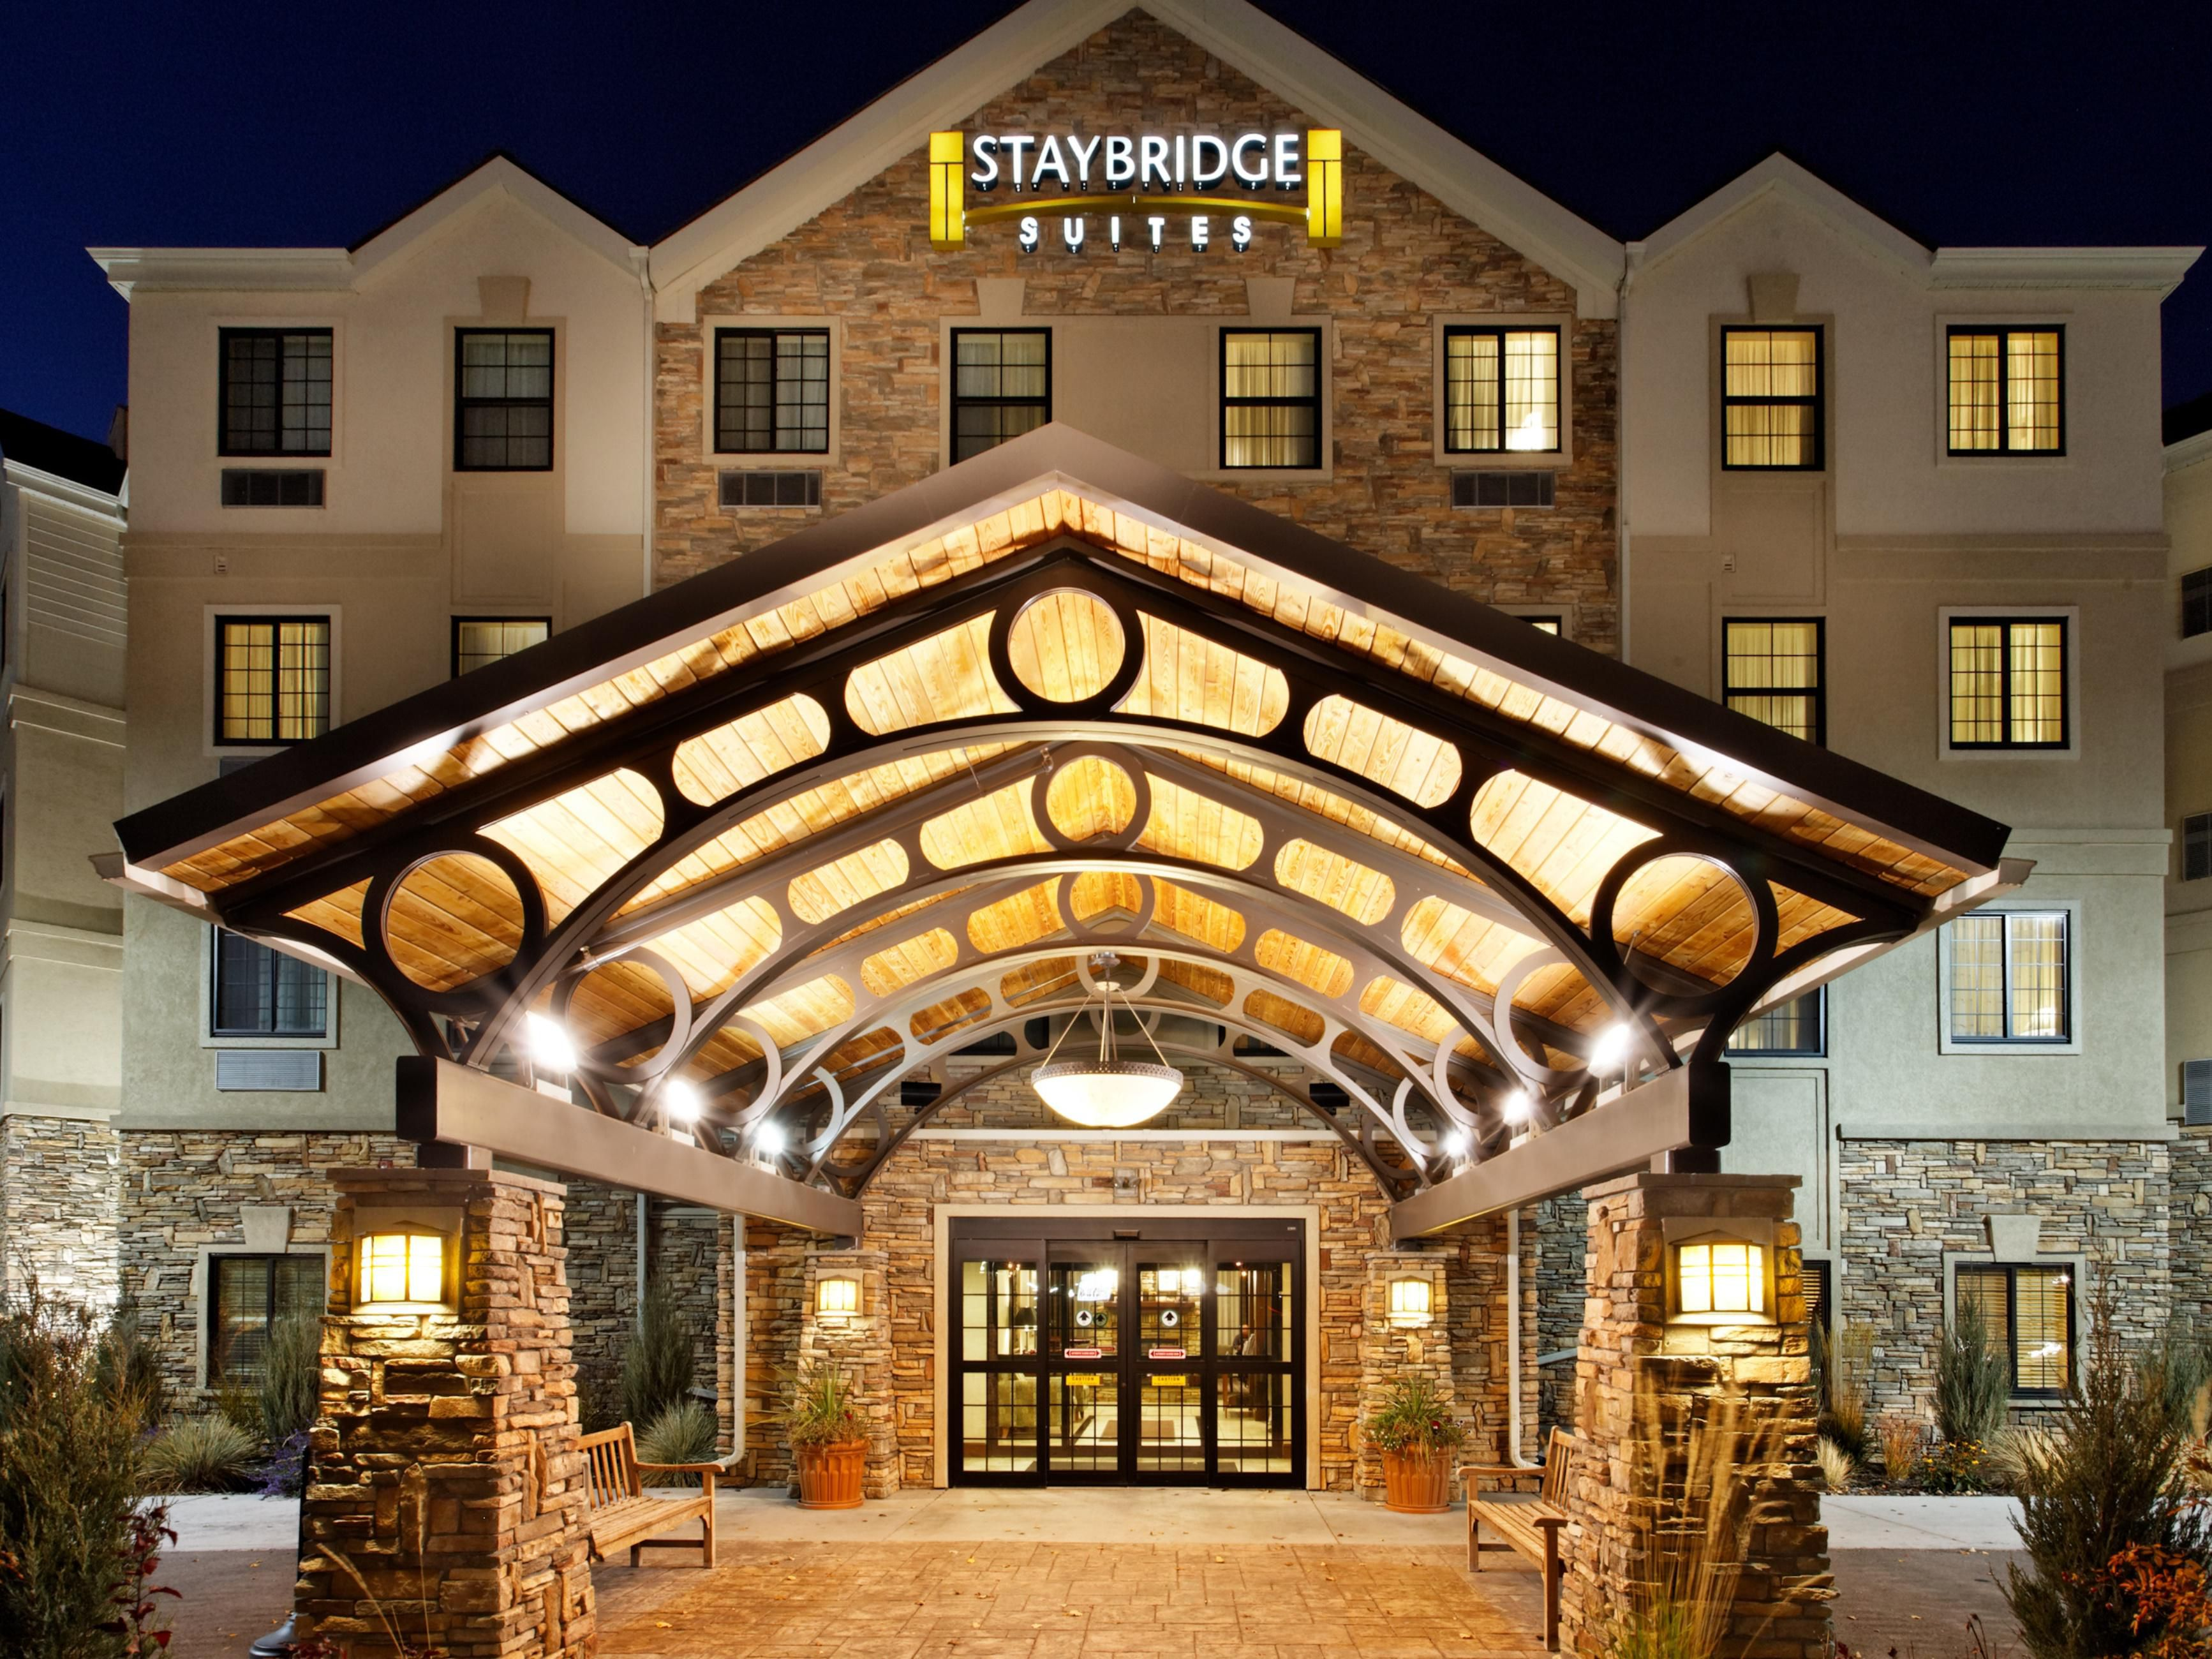 Staybridge Suites Gilbert East Mesa Extended Stay Hotel In United States With Full Kitchen